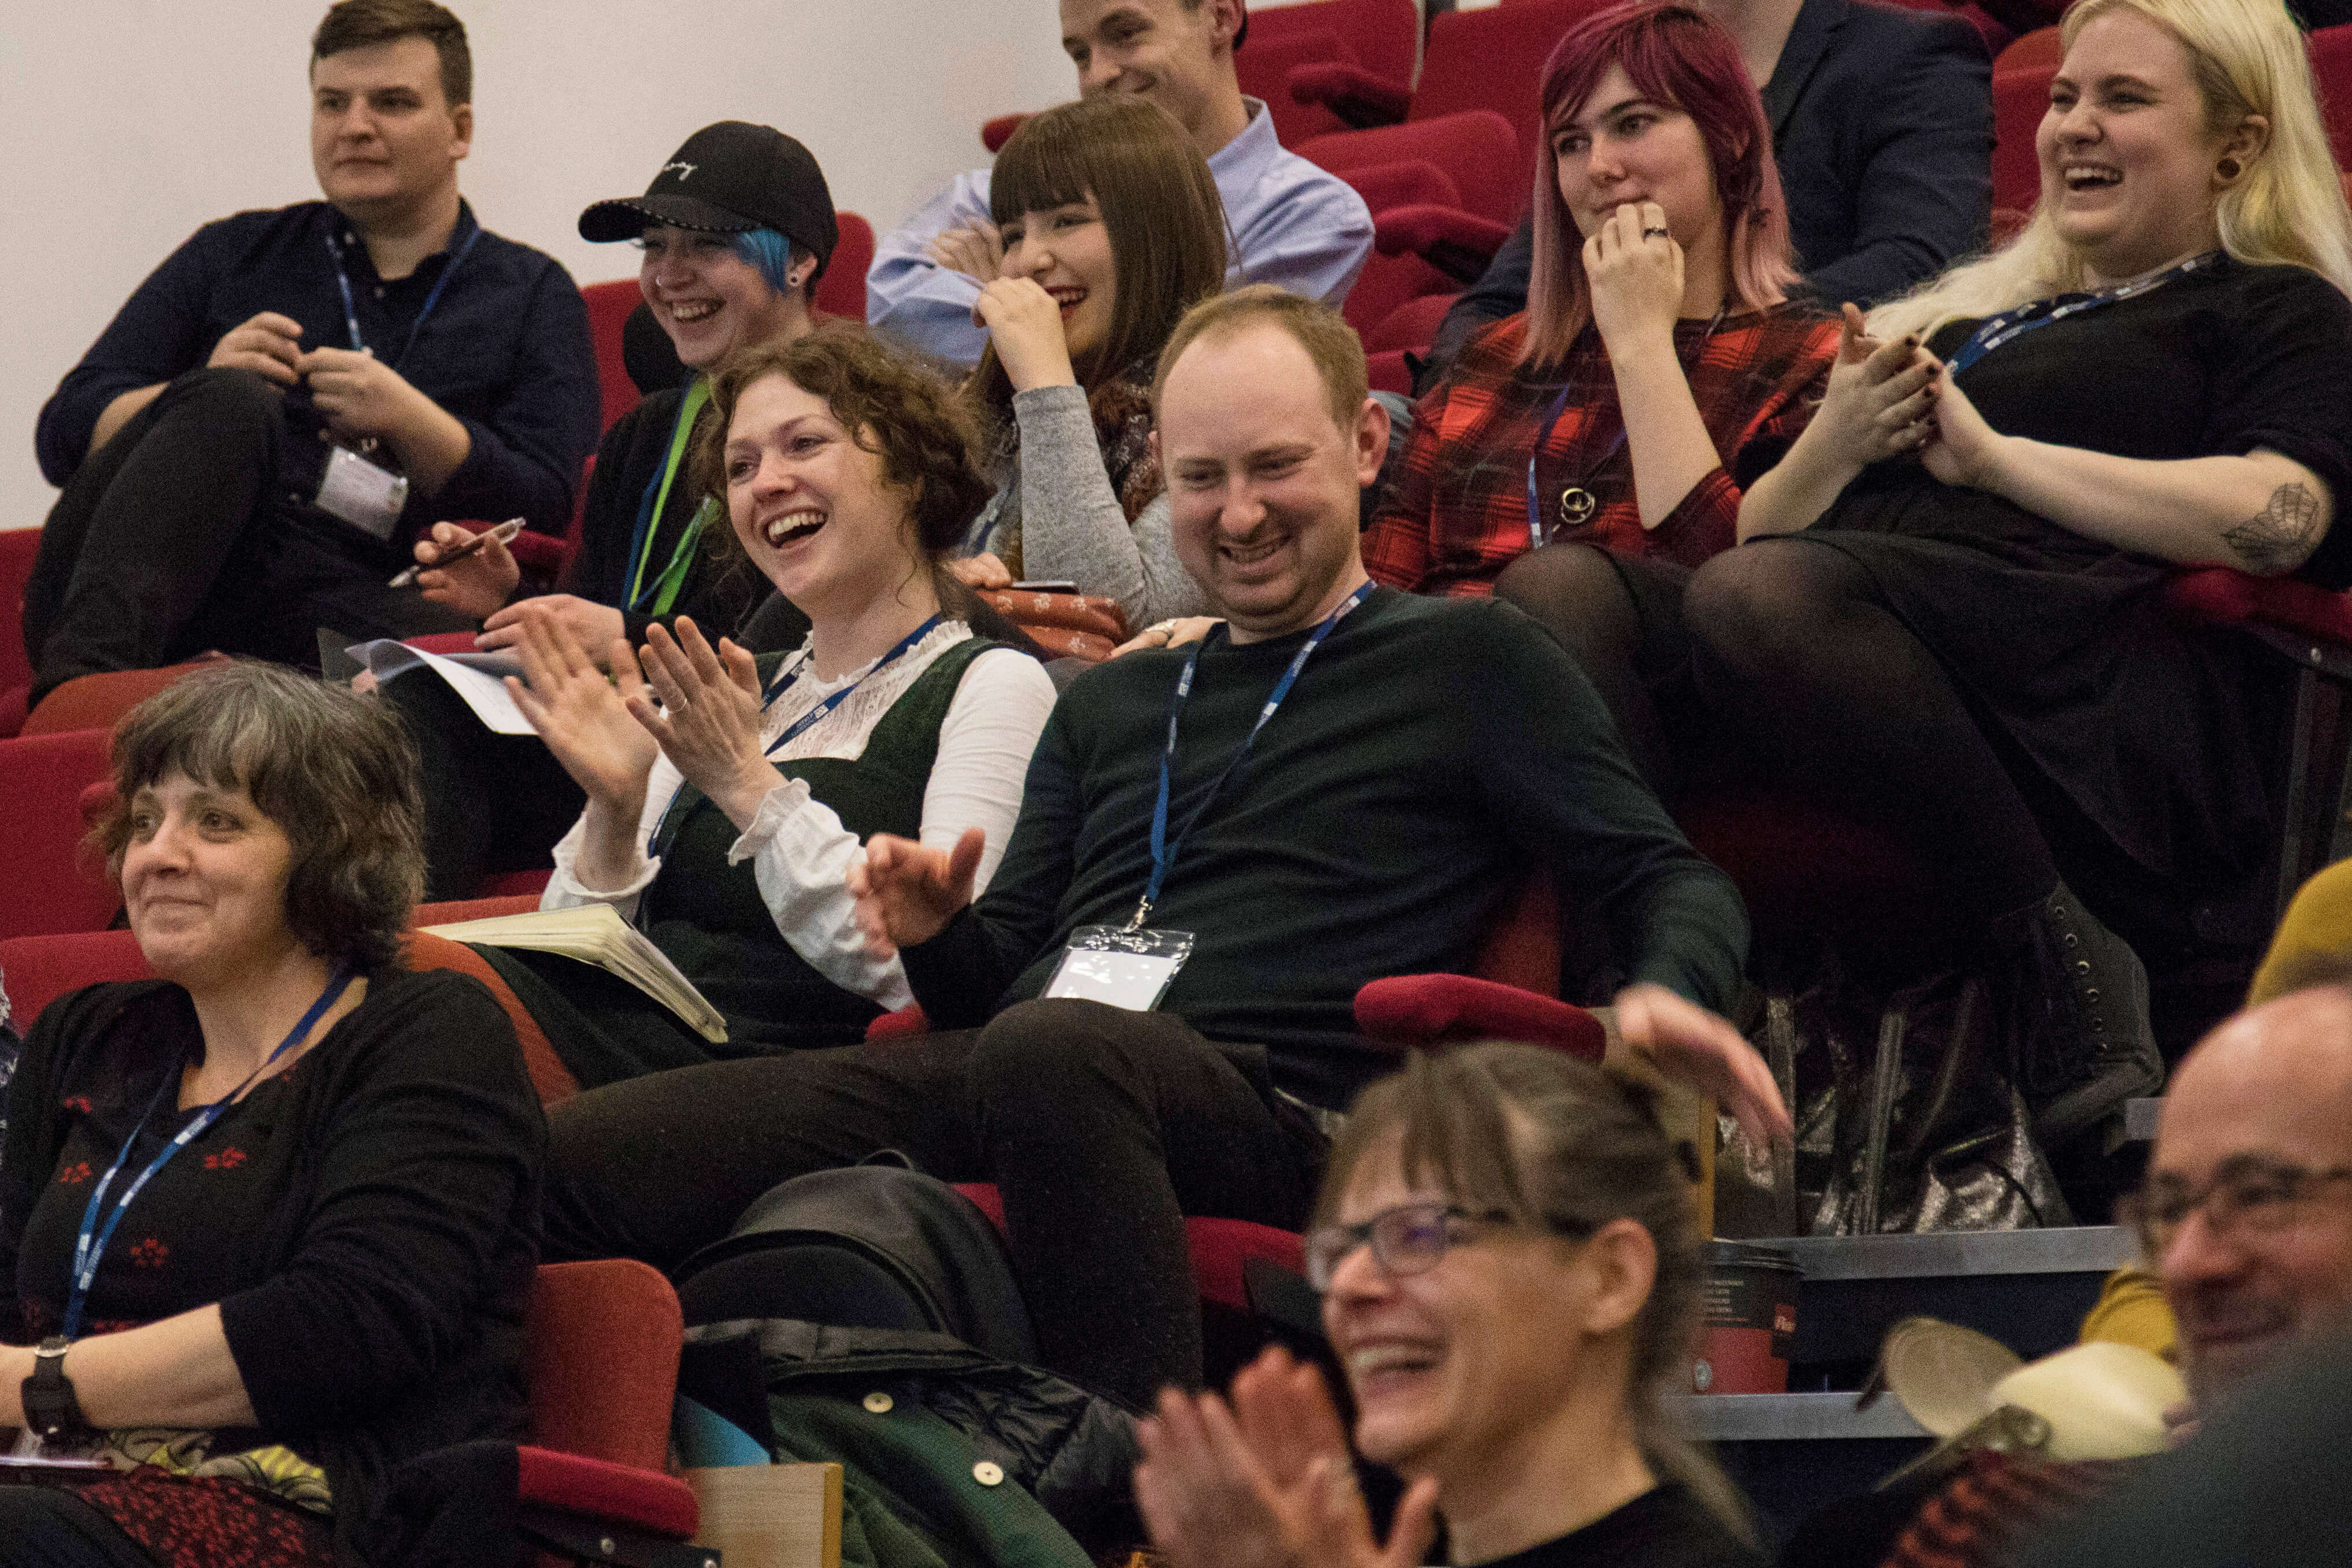 People enjoying FORMAT19 Conference at the University of Derby